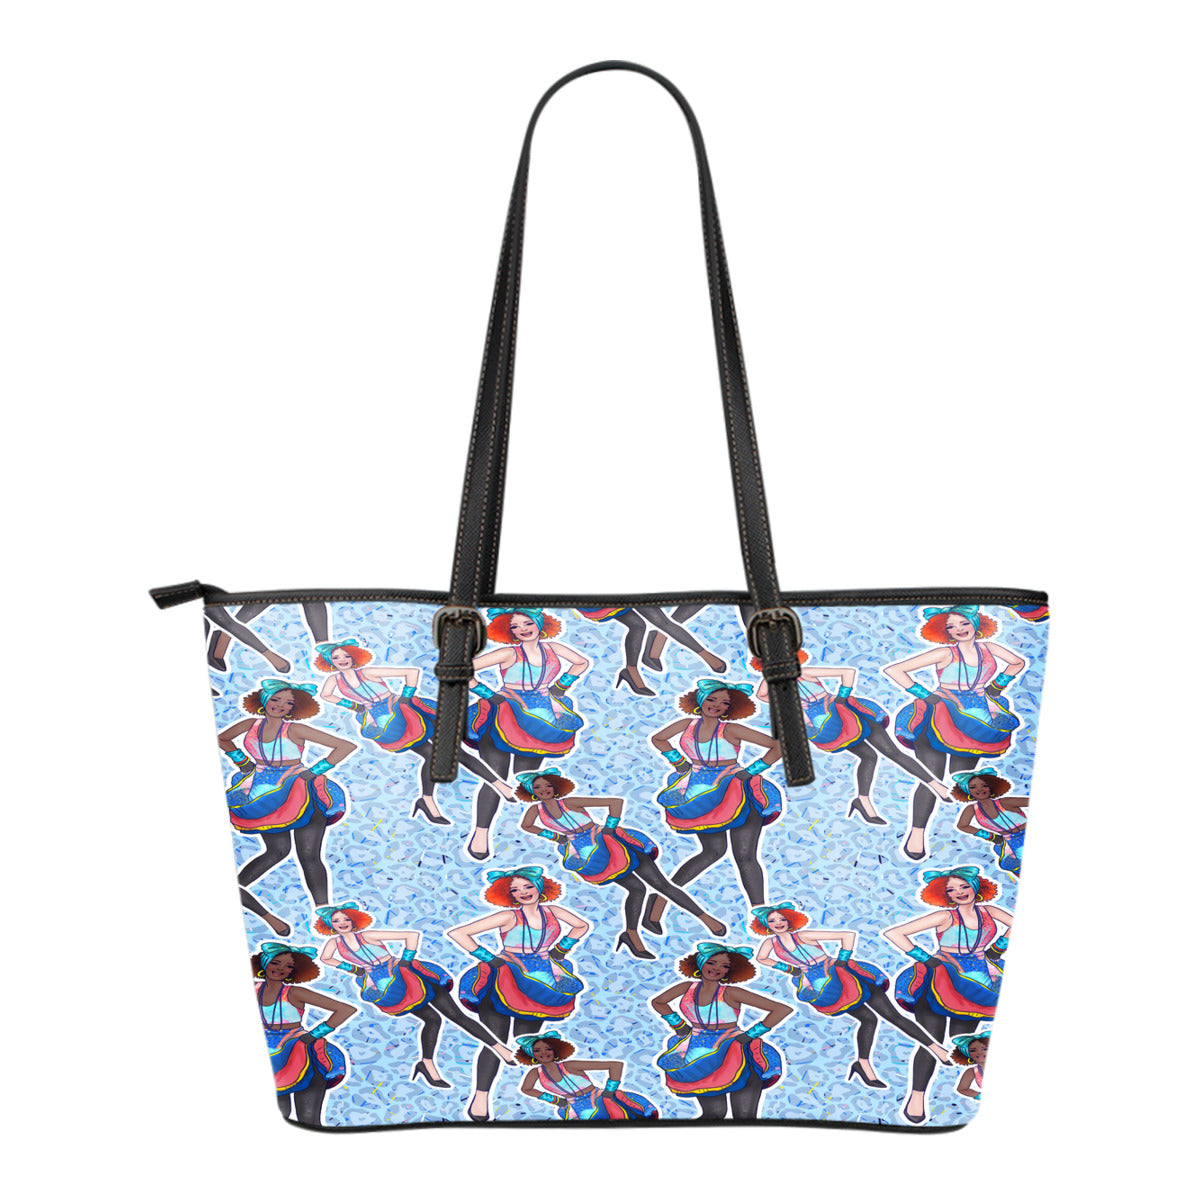 80s Fashion Themed Design C3 Women Small Leather Tote Bag